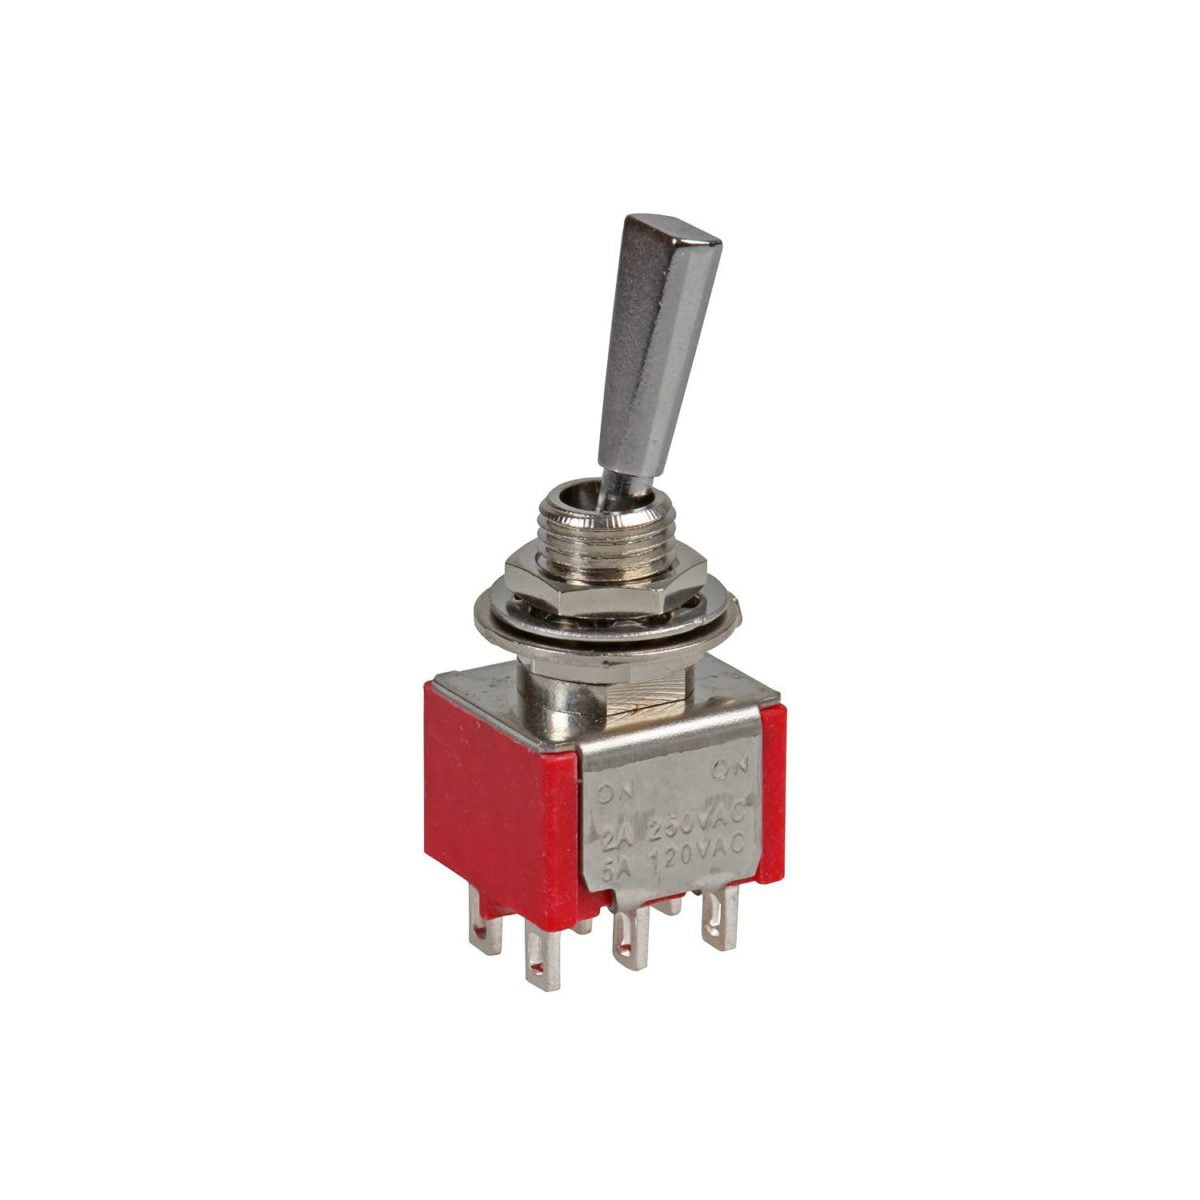 DPDT On-On-On Toggle Switch [Flat Bat]